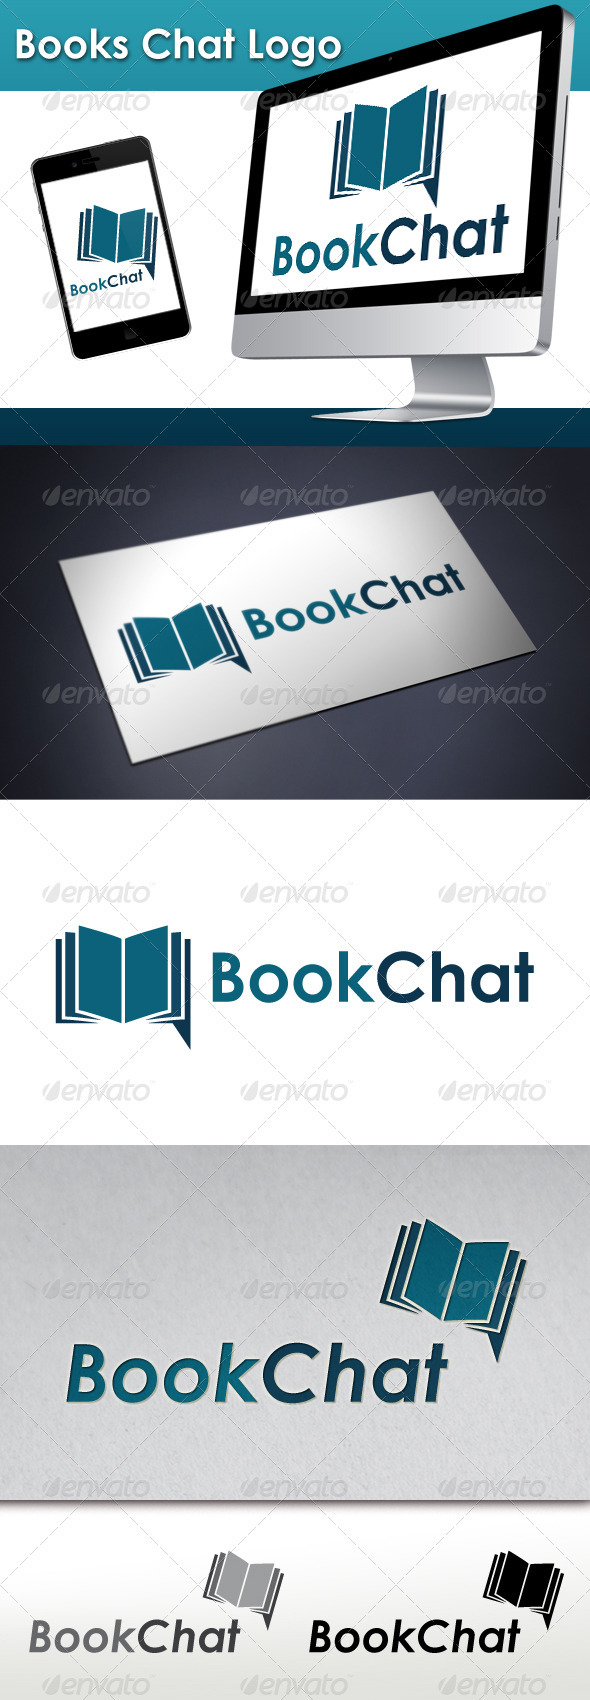 Books Chat Logo - Objects Logo Templates